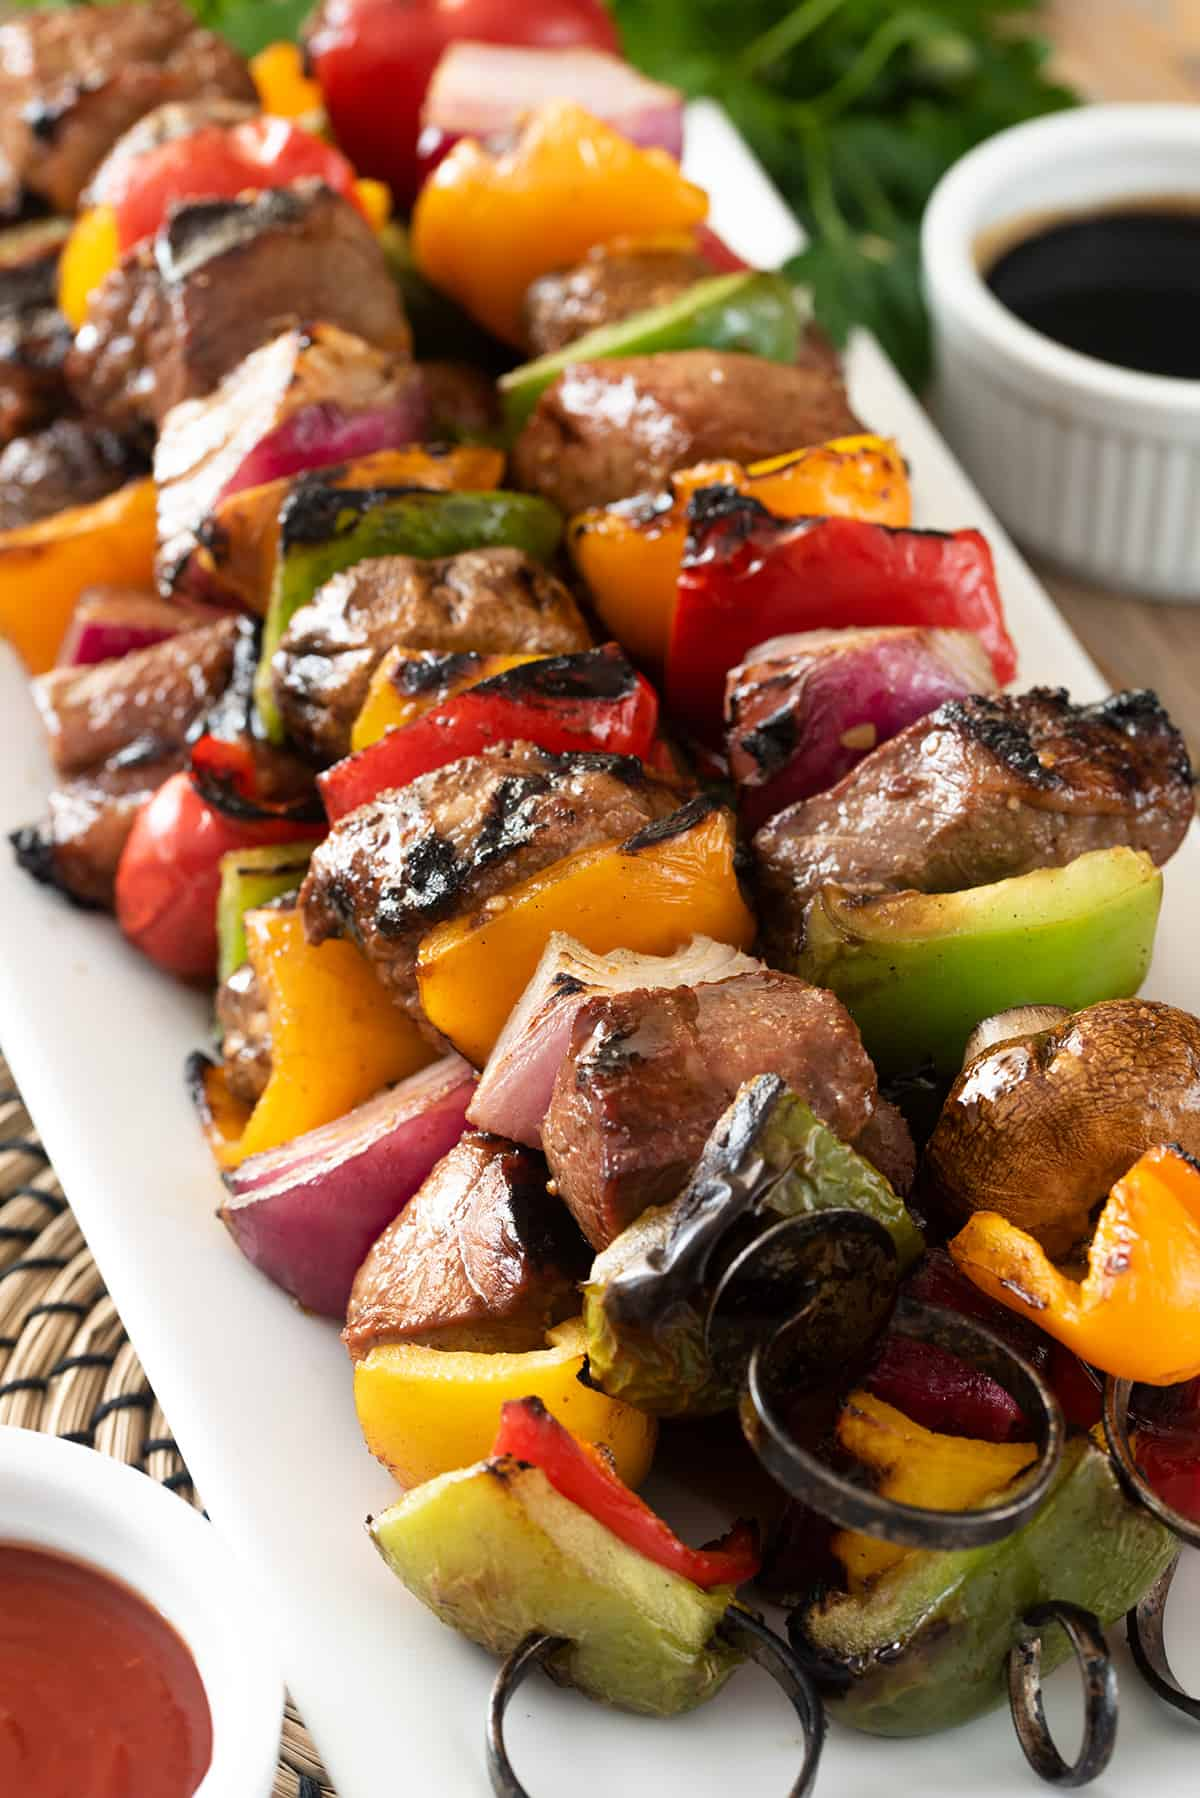 Side view of steak kabobs on metal skewers with peppers, mushrooms, and onions. Sauces on the side.